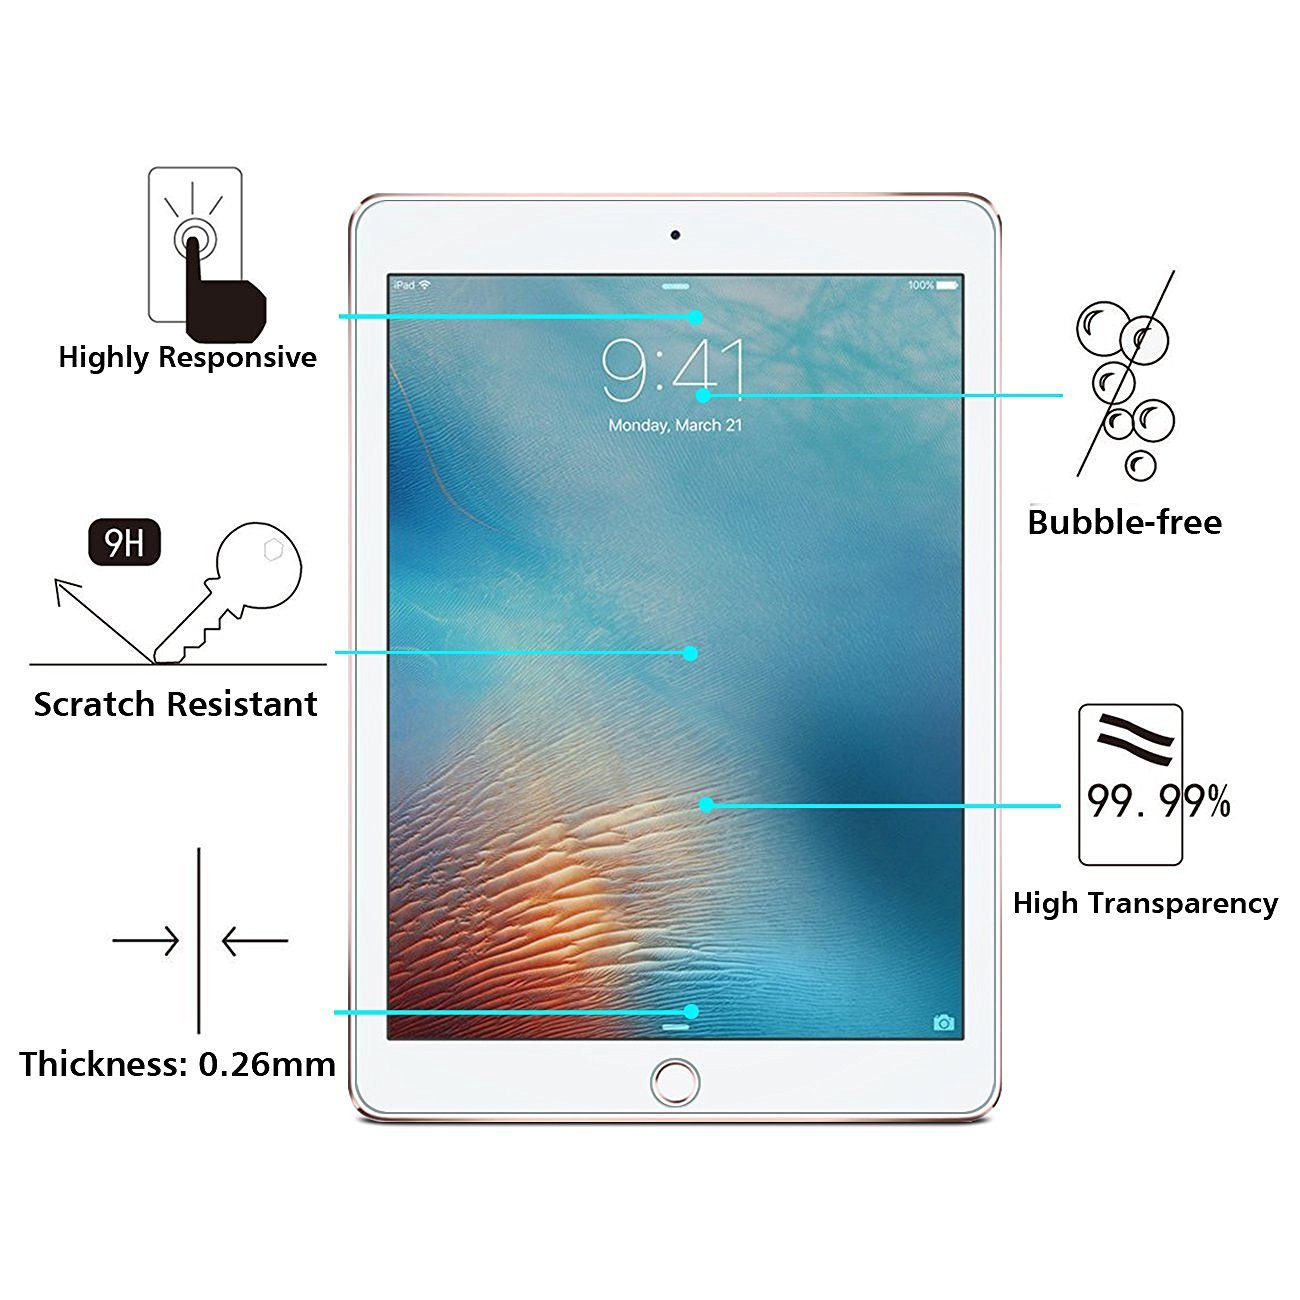 Surface pencil compatible tempered glass screen protector with 2 5d - Omoton 2017 Ipad Screen Protector Ipad Pro 9 7 Screen Protector Apple Pencil Compatible Tempered Glass With Scratch Resistant Crystal Clear Bubble